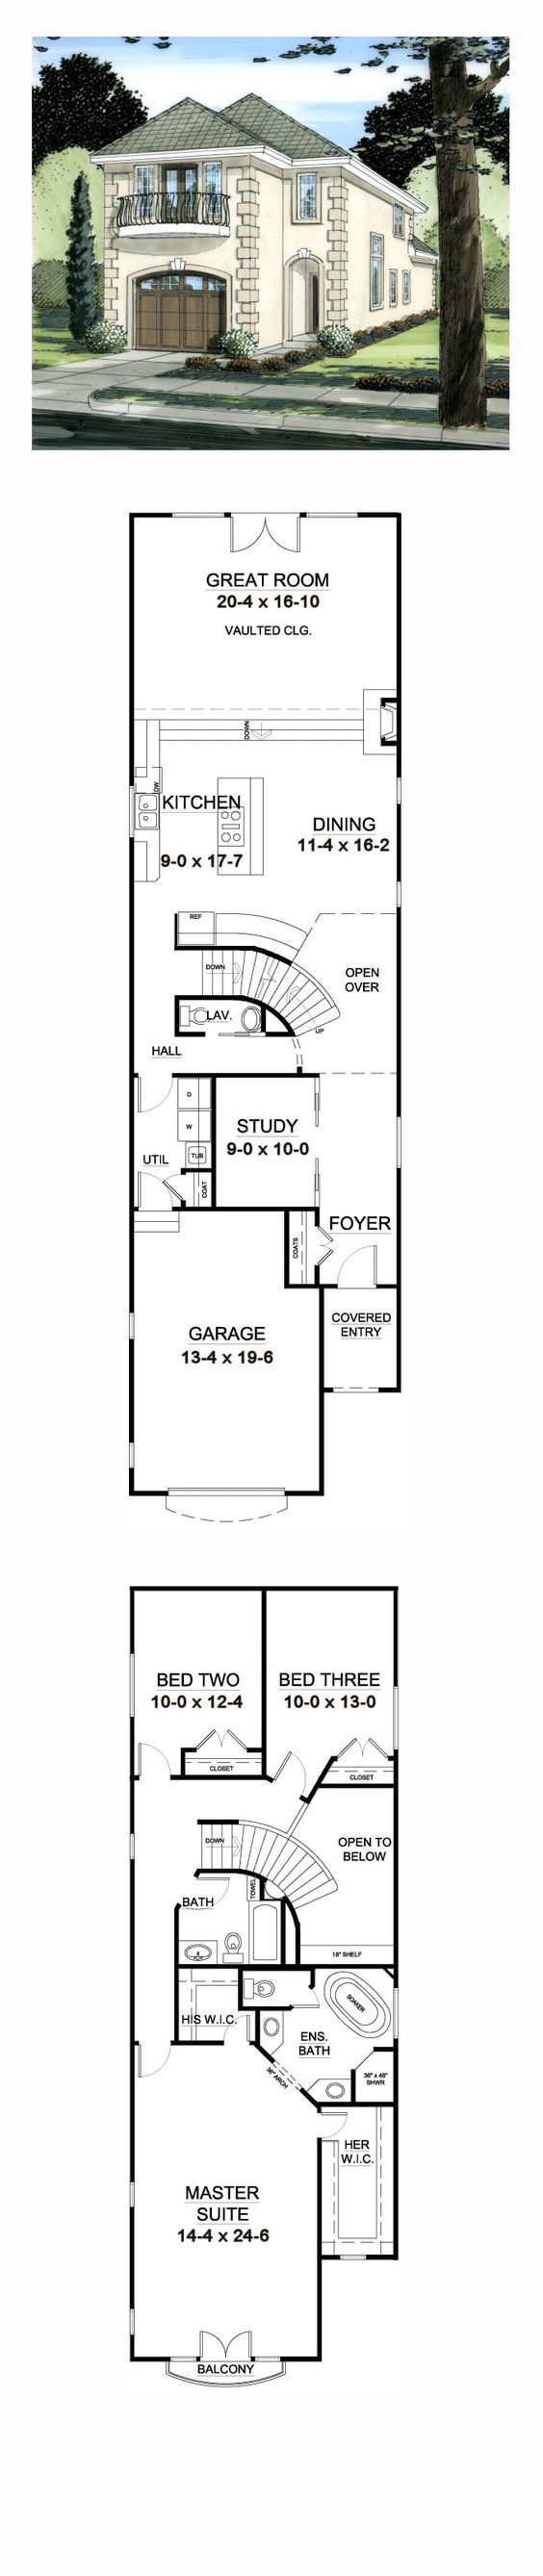 17 best ideas about narrow lot house plans on pinterest for Narrow bathroom floor plans